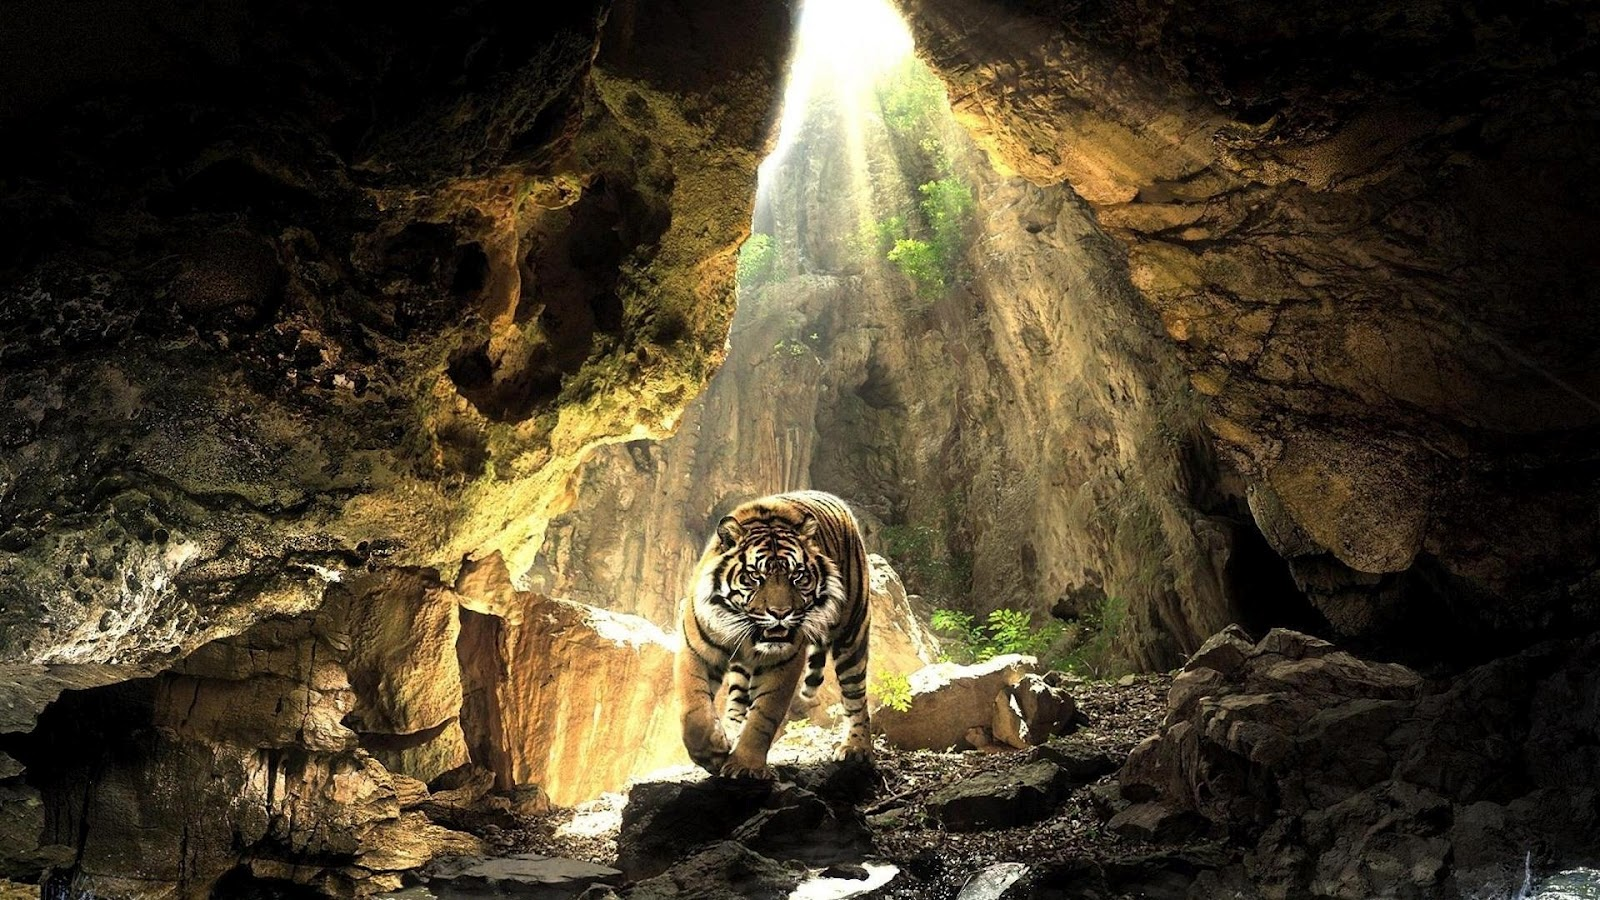 123Walls | Download High Quality Wallpapers: Wild Animal Stock Photography